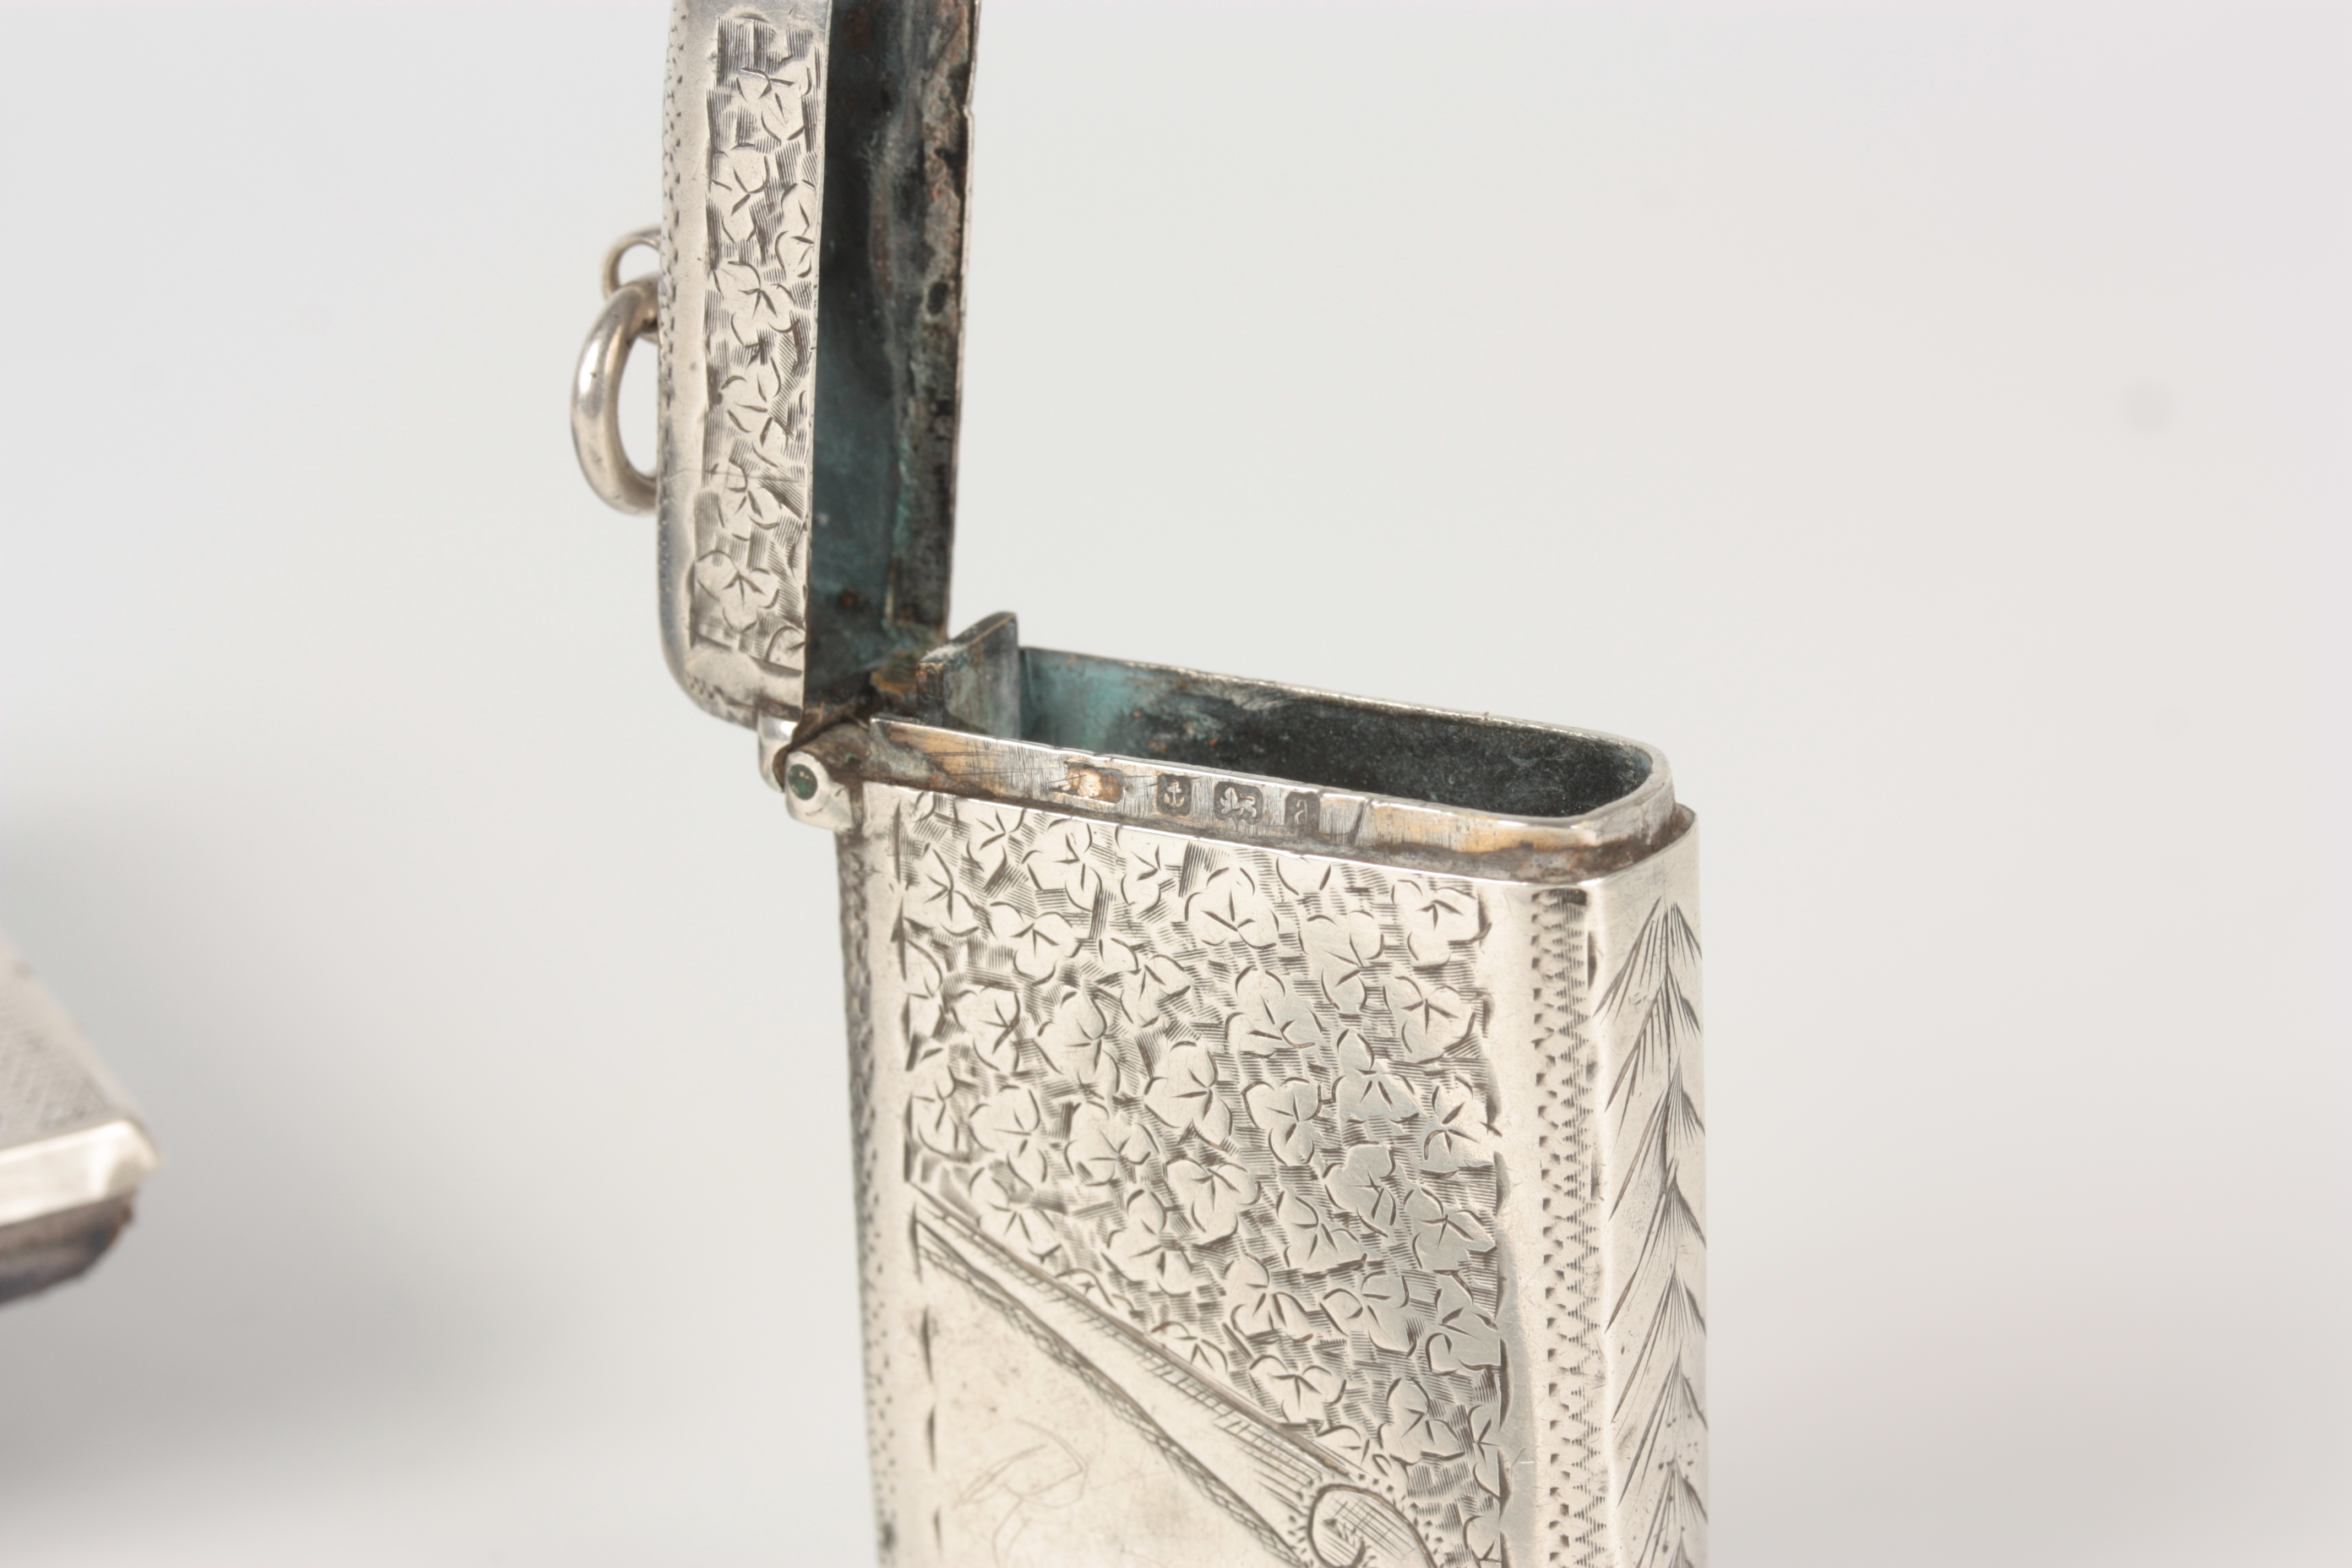 THREE PIECES OF SILVER INCLUDING A SILVER BLADE FRUIT KNIFE WITH MOTHER OF PEARL HANDLE 13cm overall - Image 4 of 8